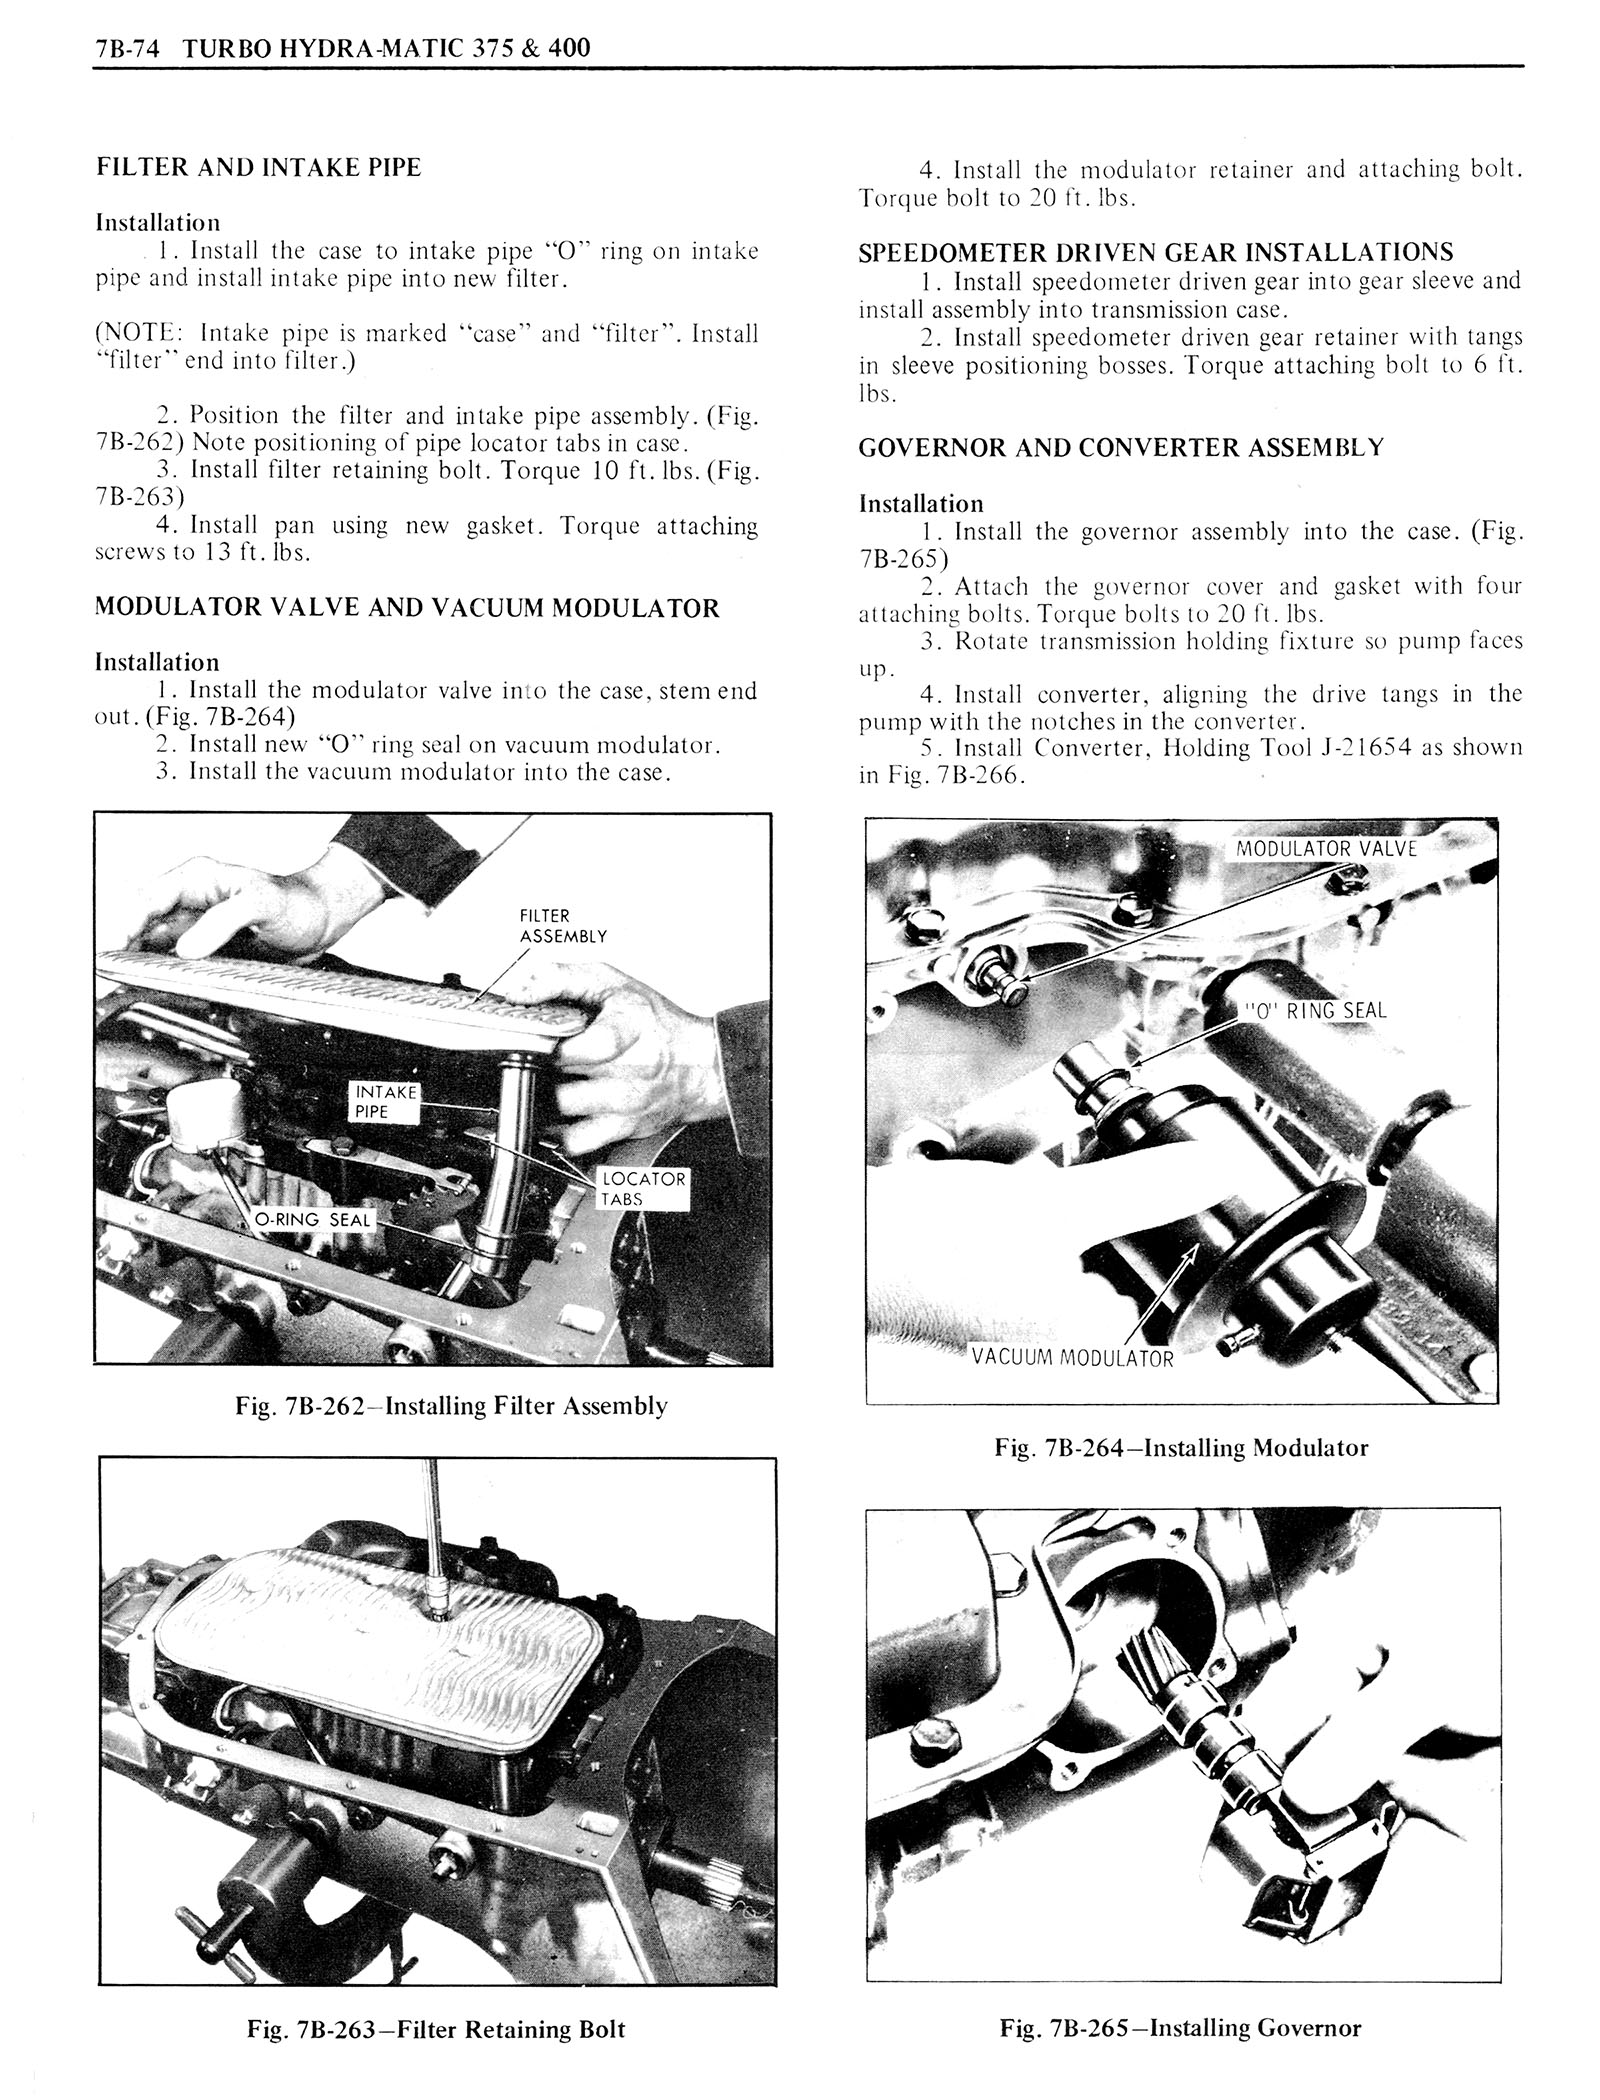 1976 Oldsmobile Service Manual page 806 of 1390